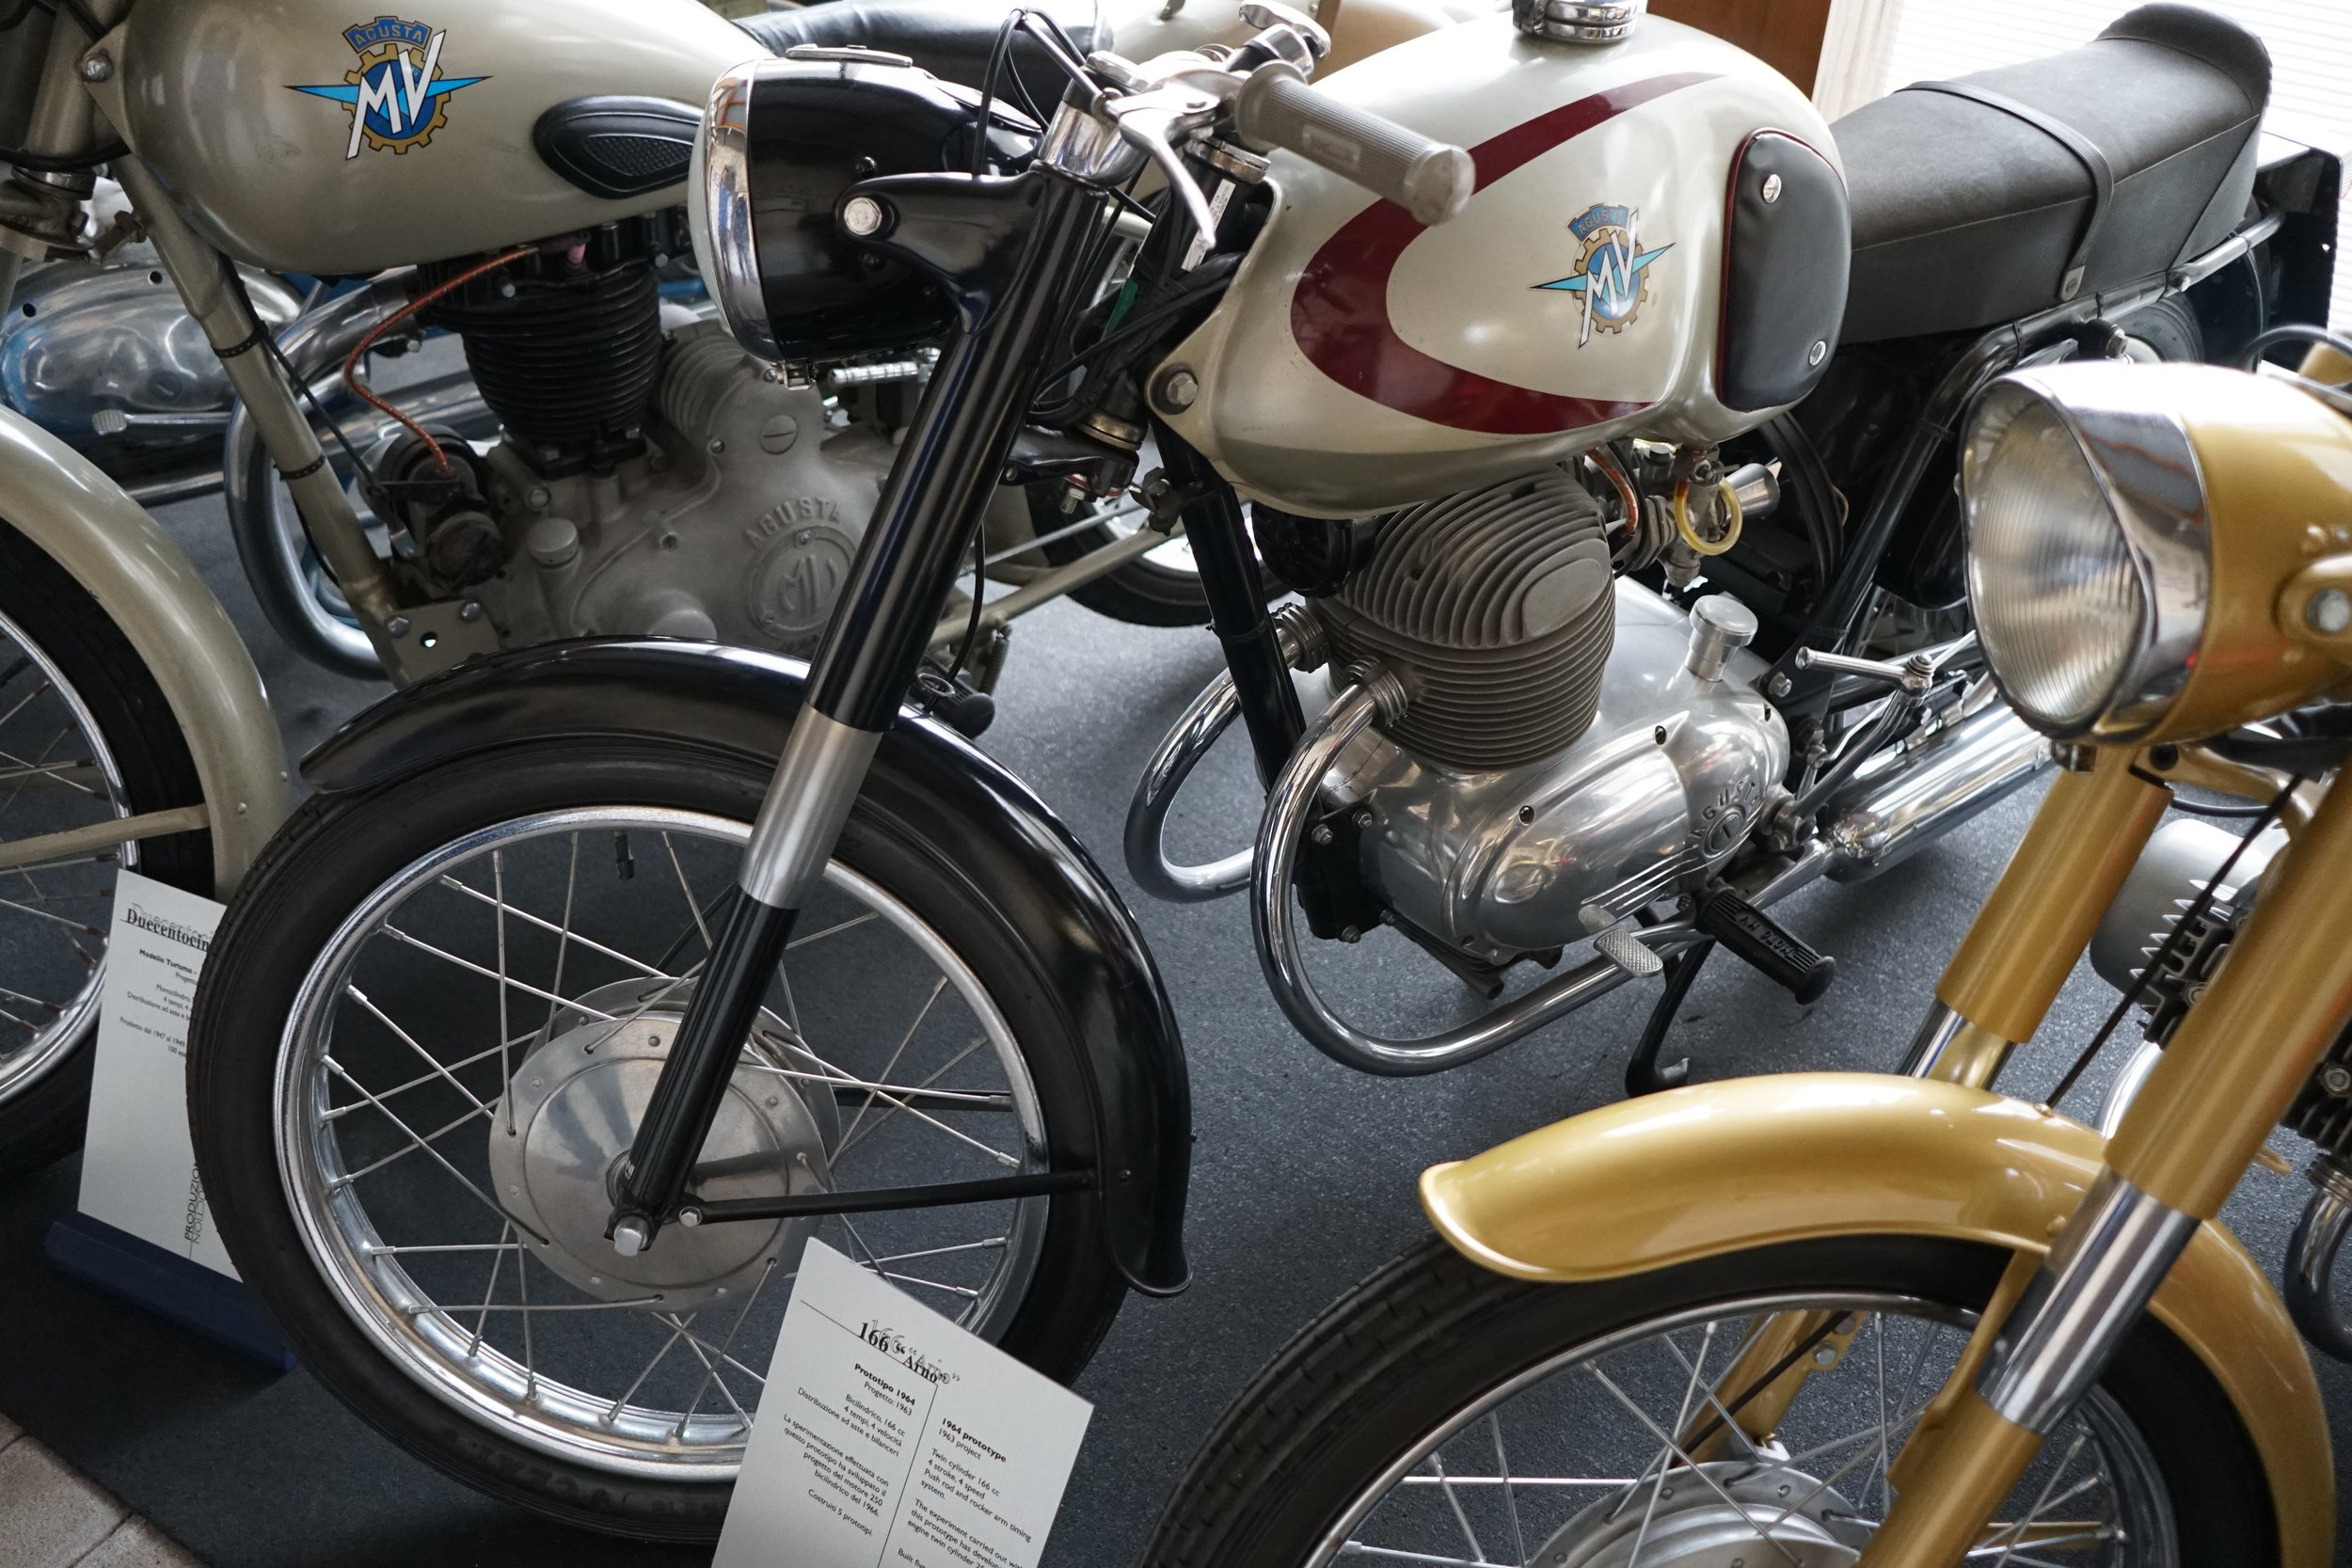 1964 'Arno' prototype. 166cc pushrod twin. Five of these prototypes were made, leading to a 250cc production model in 1966.